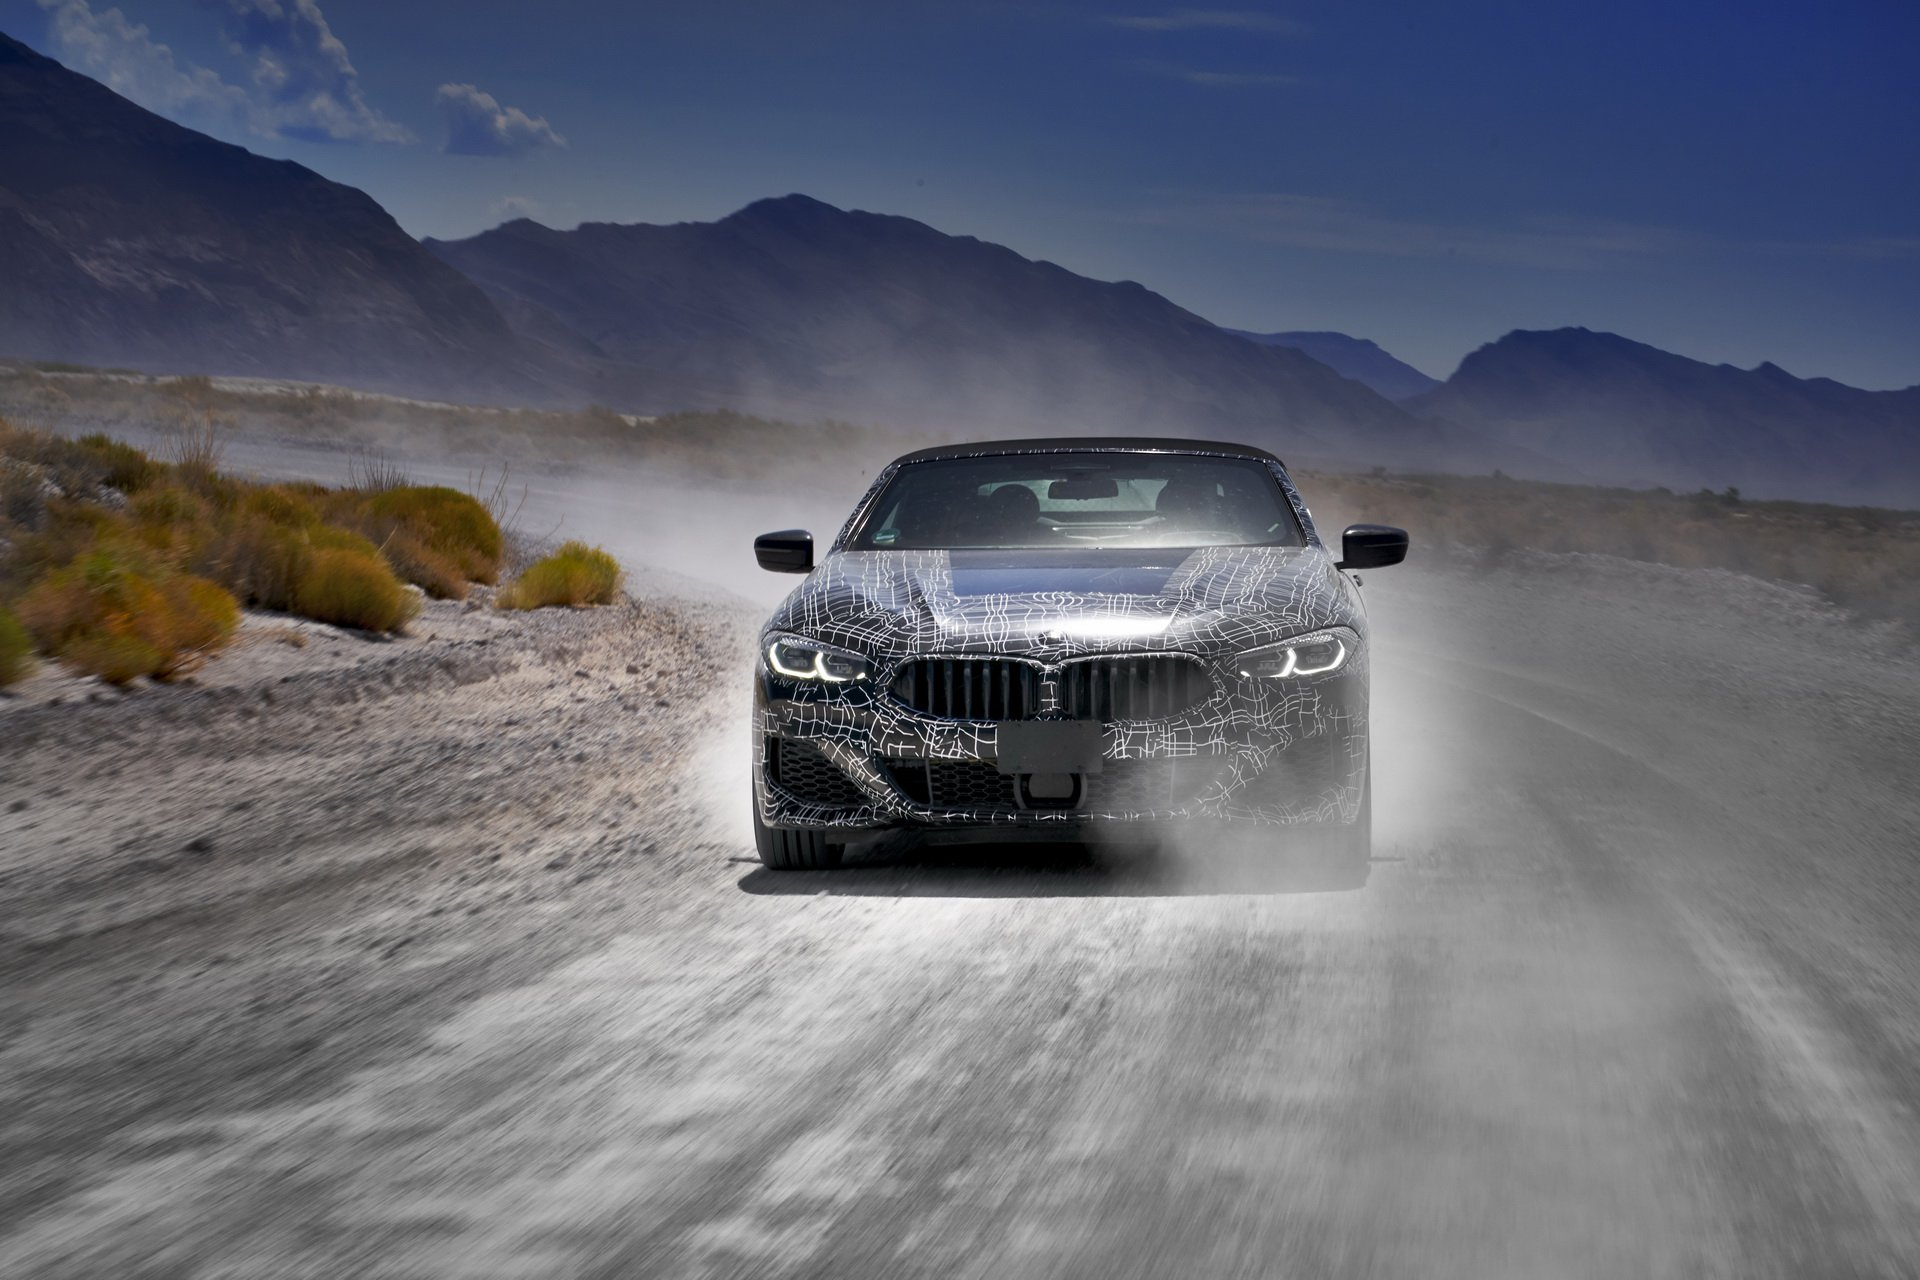 Bmw Teases 8 Series Convertible With Full Camouflage Techstory